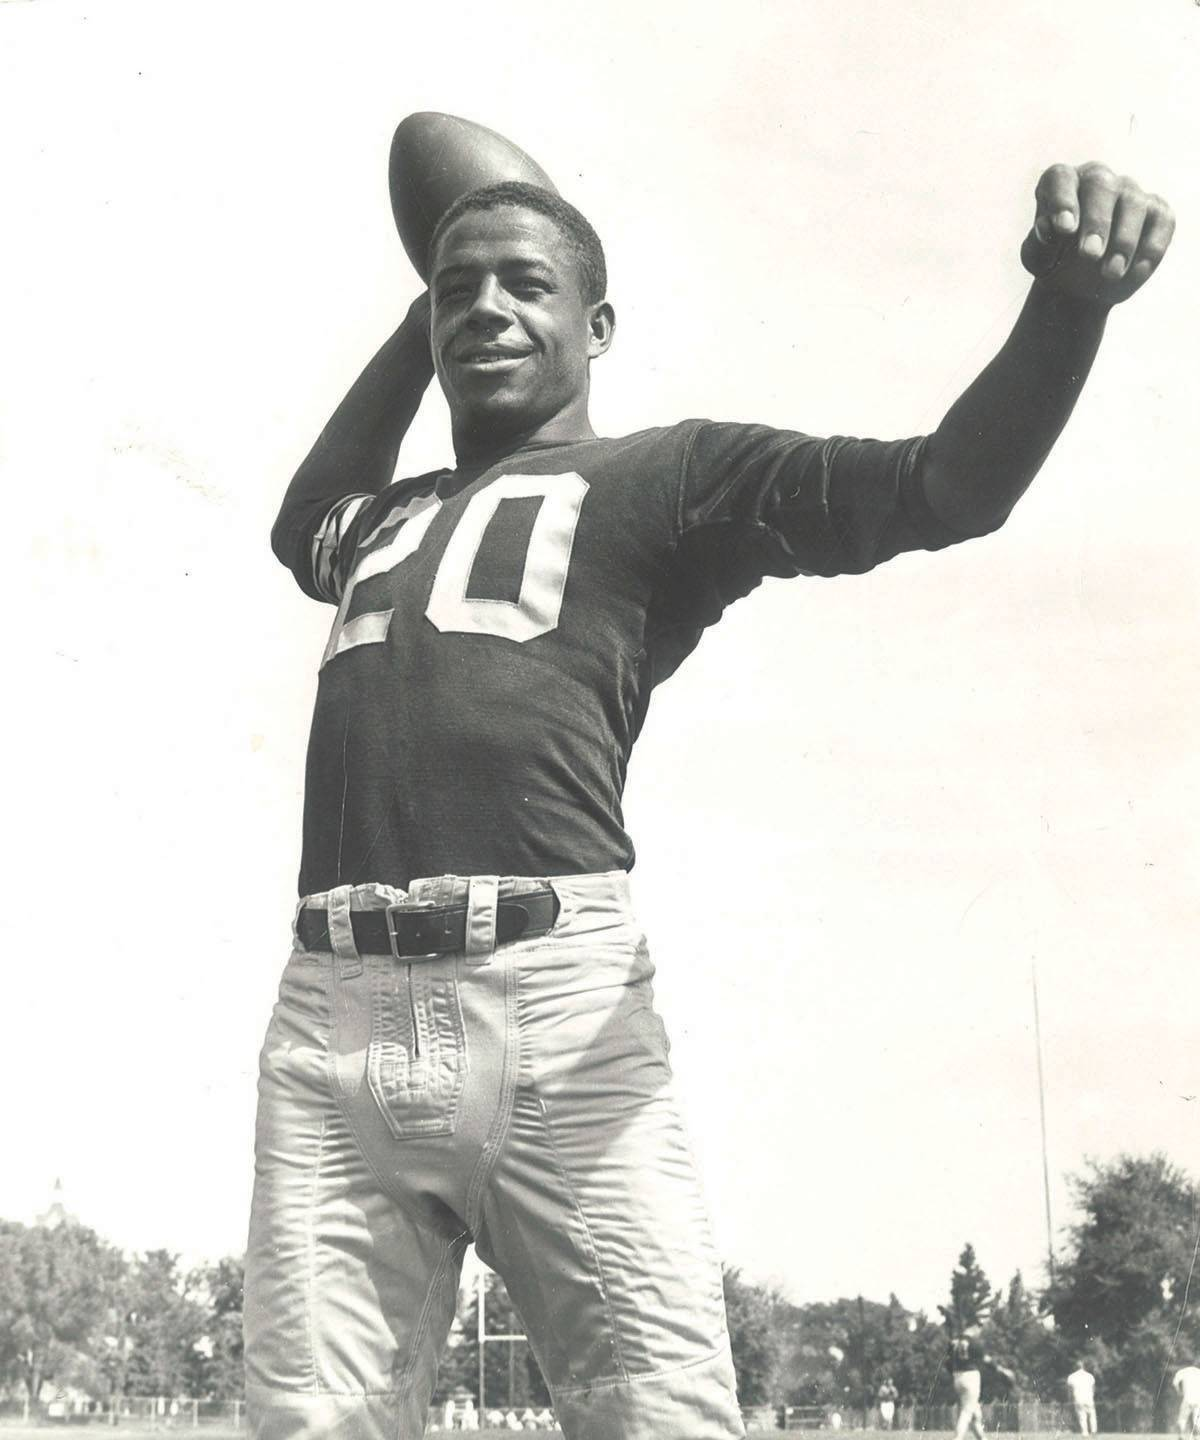 Having to blaze his own trails, William R. Norwood became the first African-American to start at quarterback for Southern Illinois University. Getting some coaching from the friendly graduating quarterback, Norwood built a career that landed him in the school's Hall of Fame.